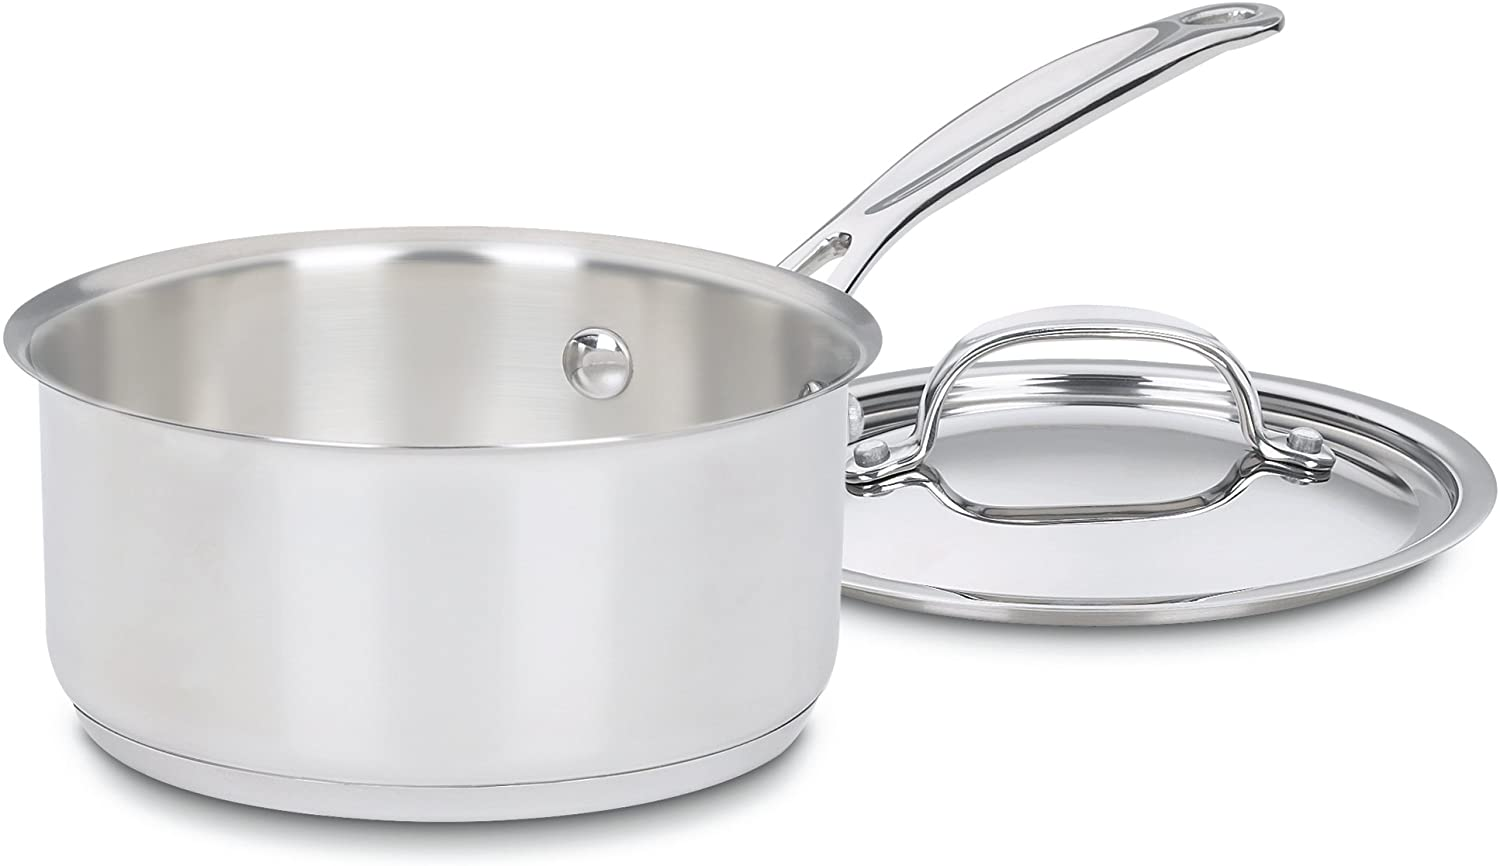 Cuisinart 719-16 Chef's Classic Stainless Saucepan with Cover, 1 1/2 Quart - Silver